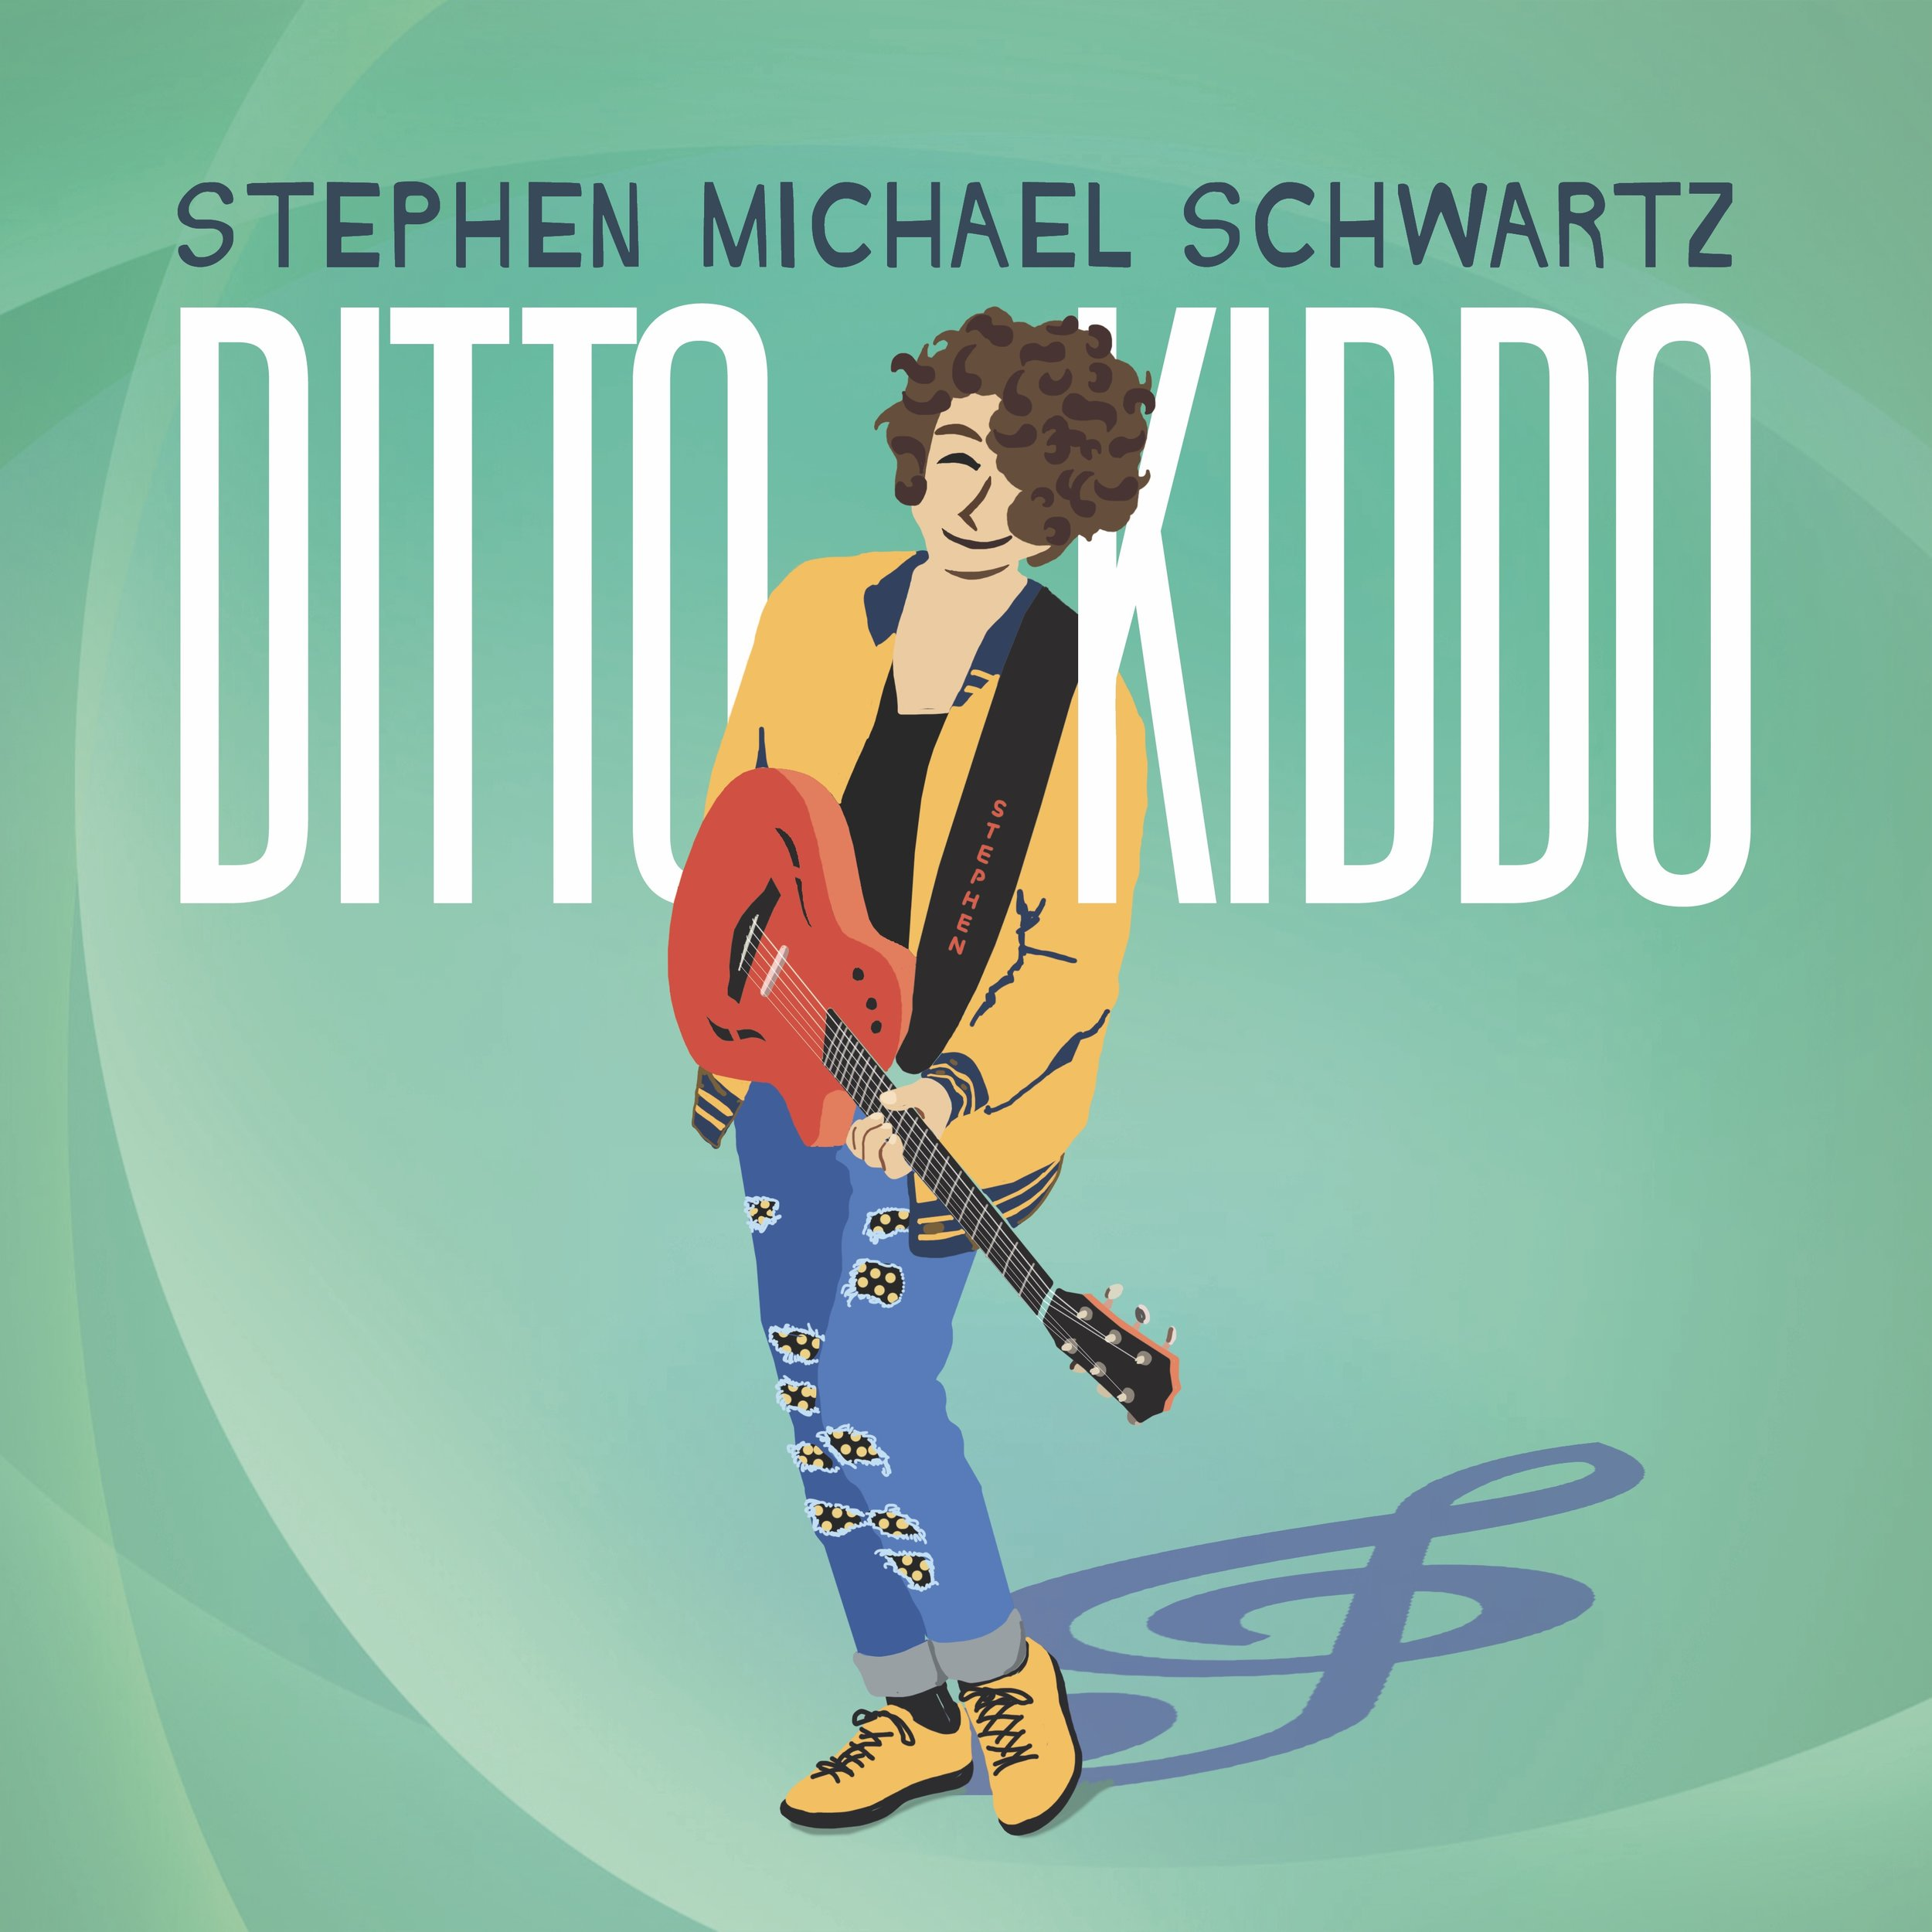 Ditto Kitto Final Cover High Res copy.jpg